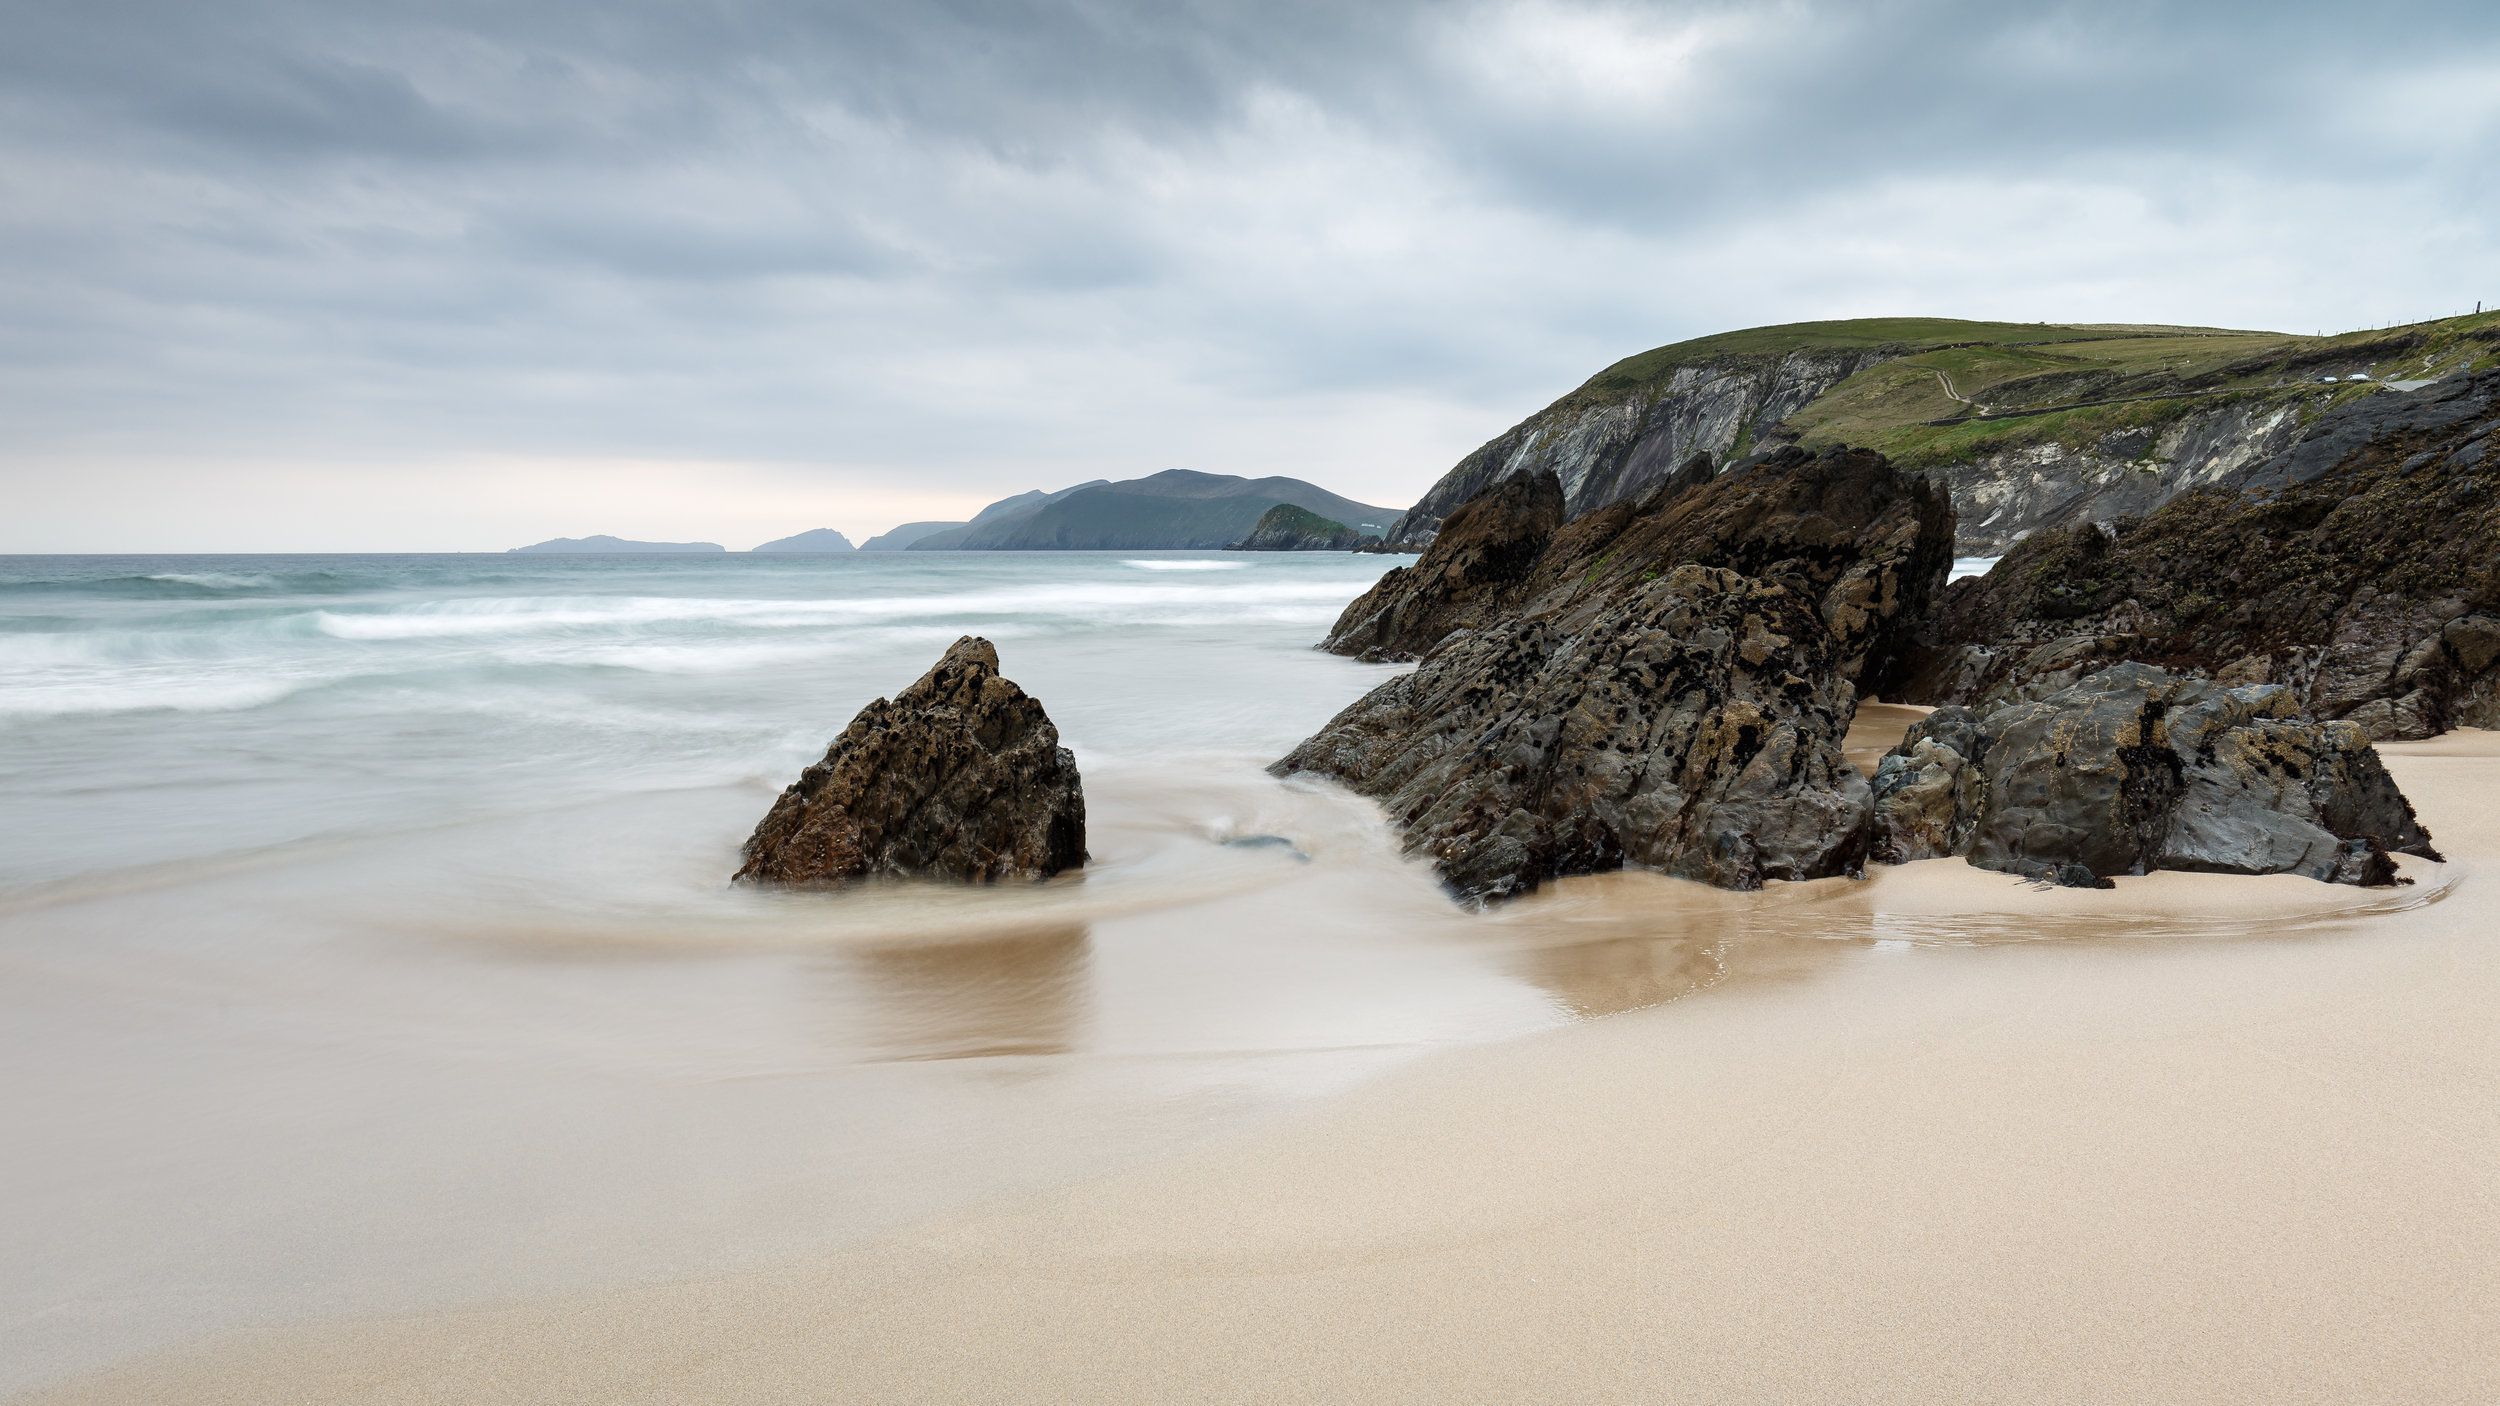 Day's End at Coumeenole